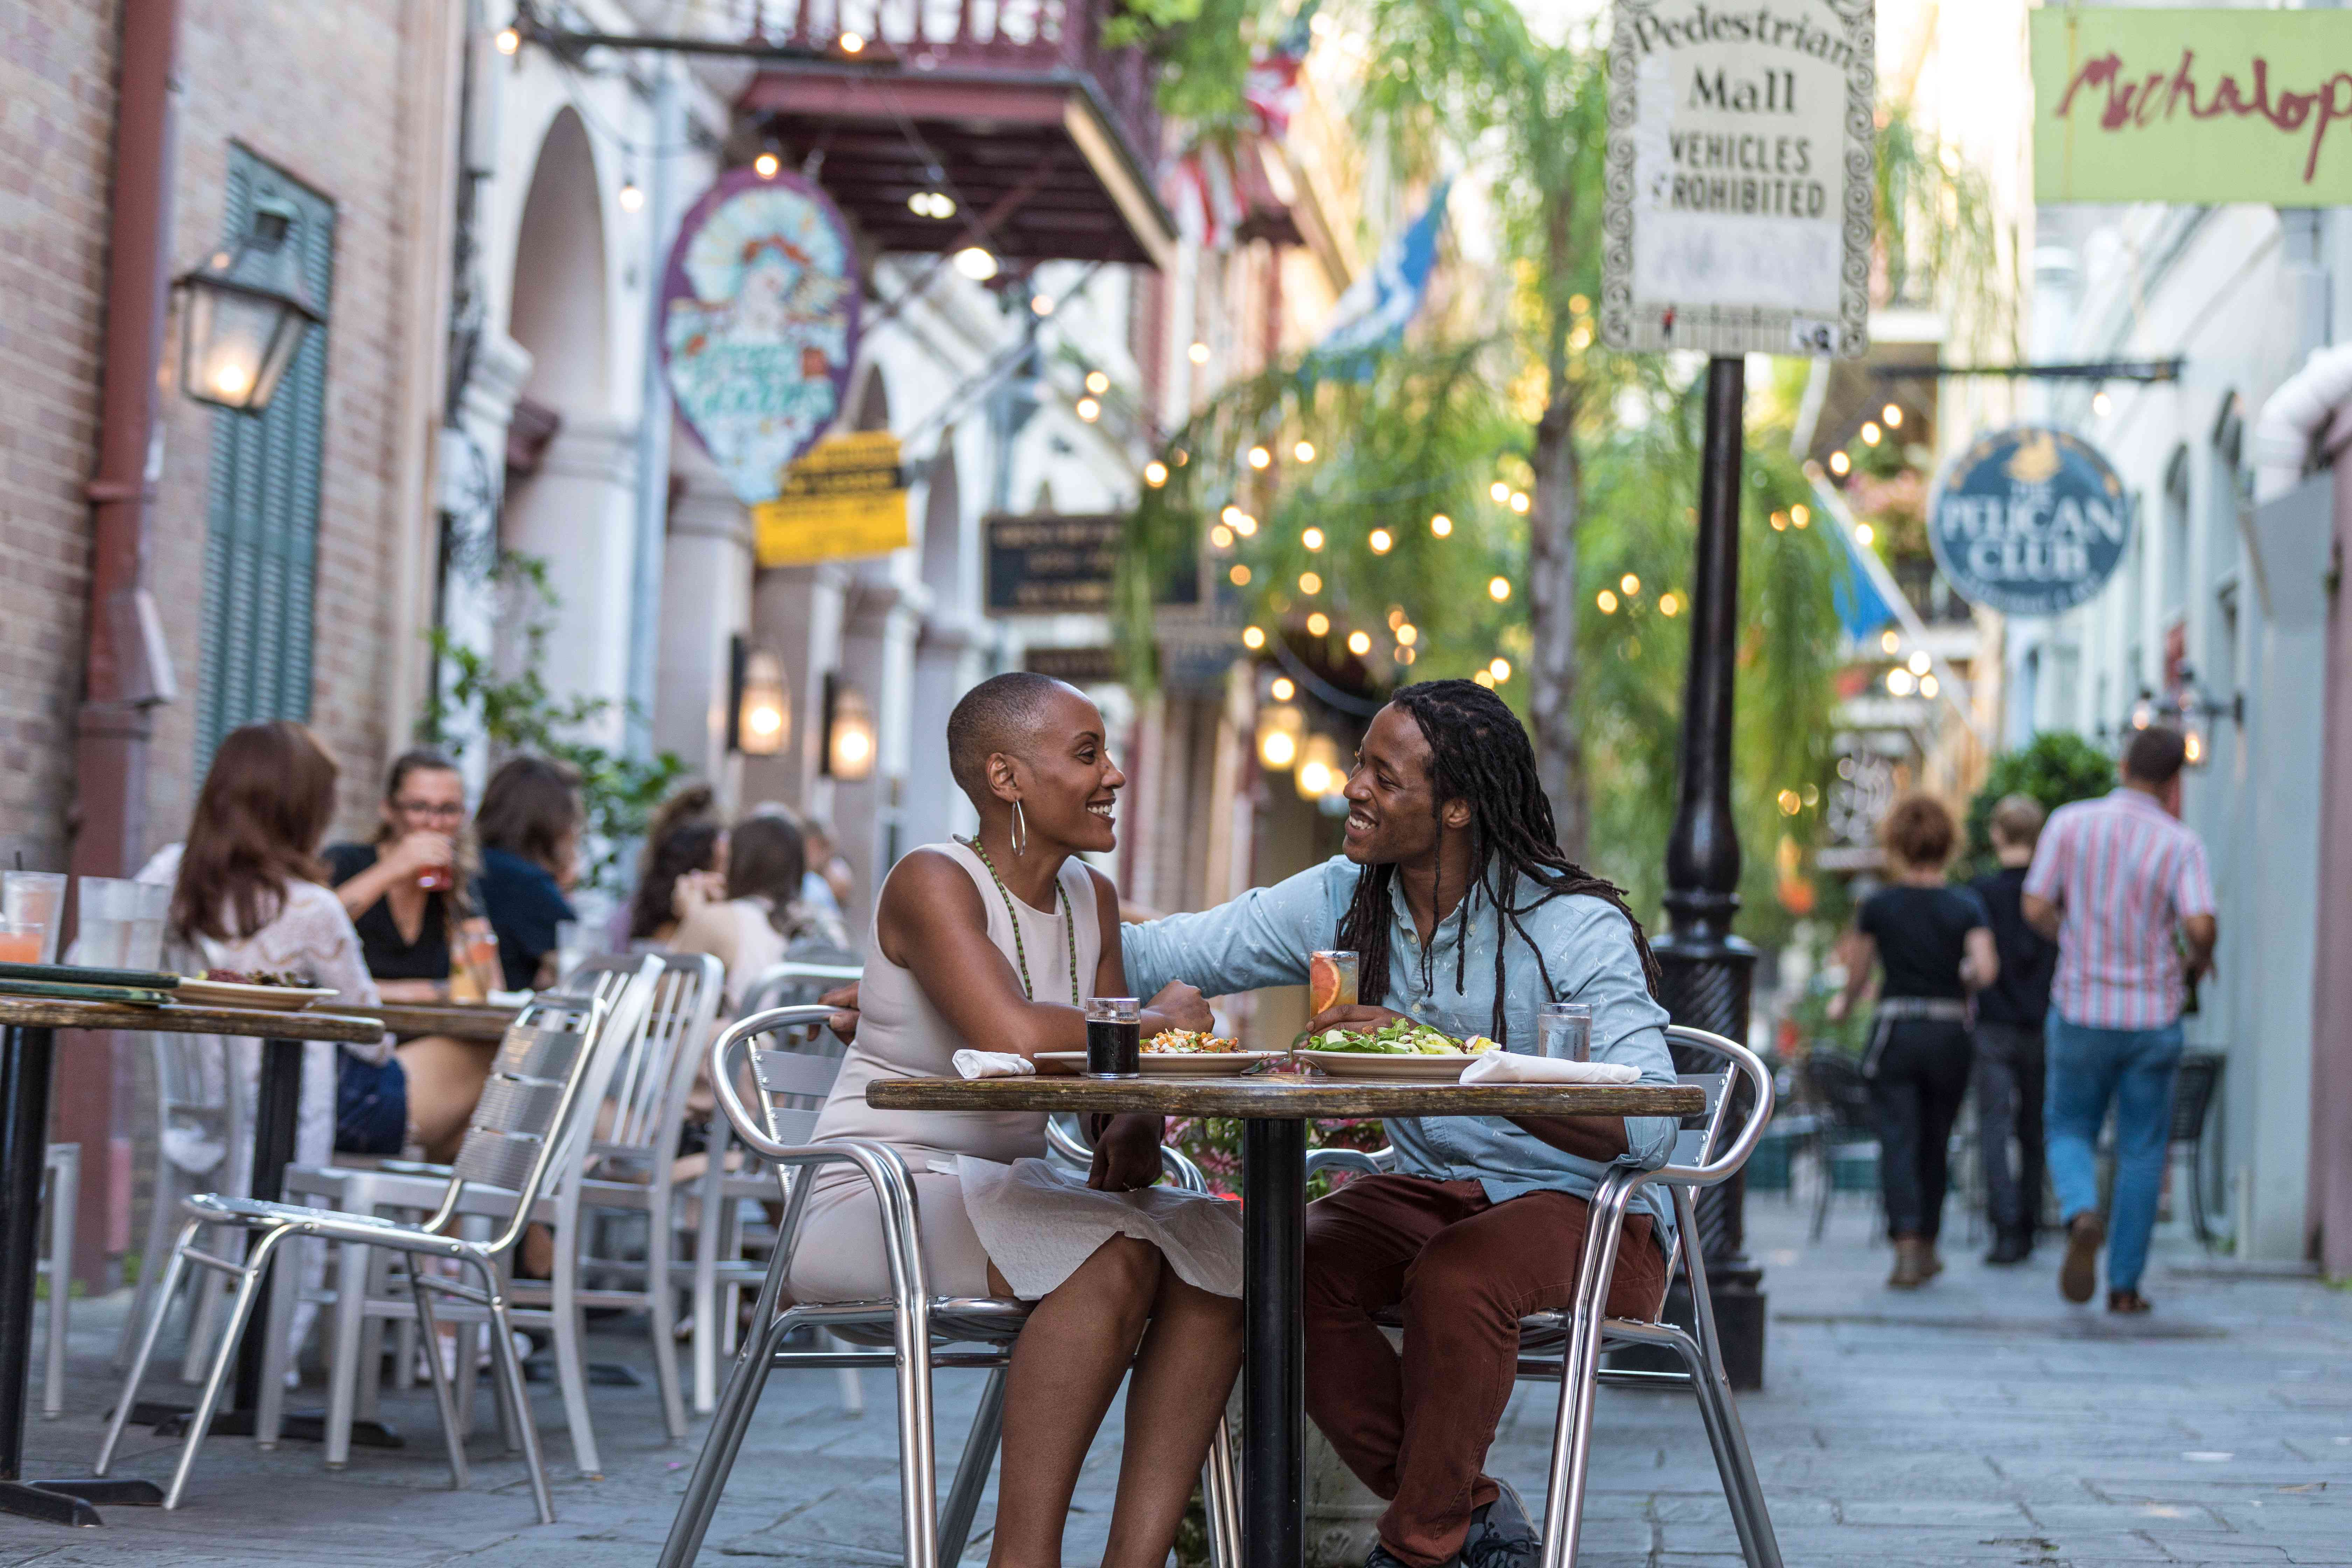 Couple outdoor dining in the courtyard in New Orleans